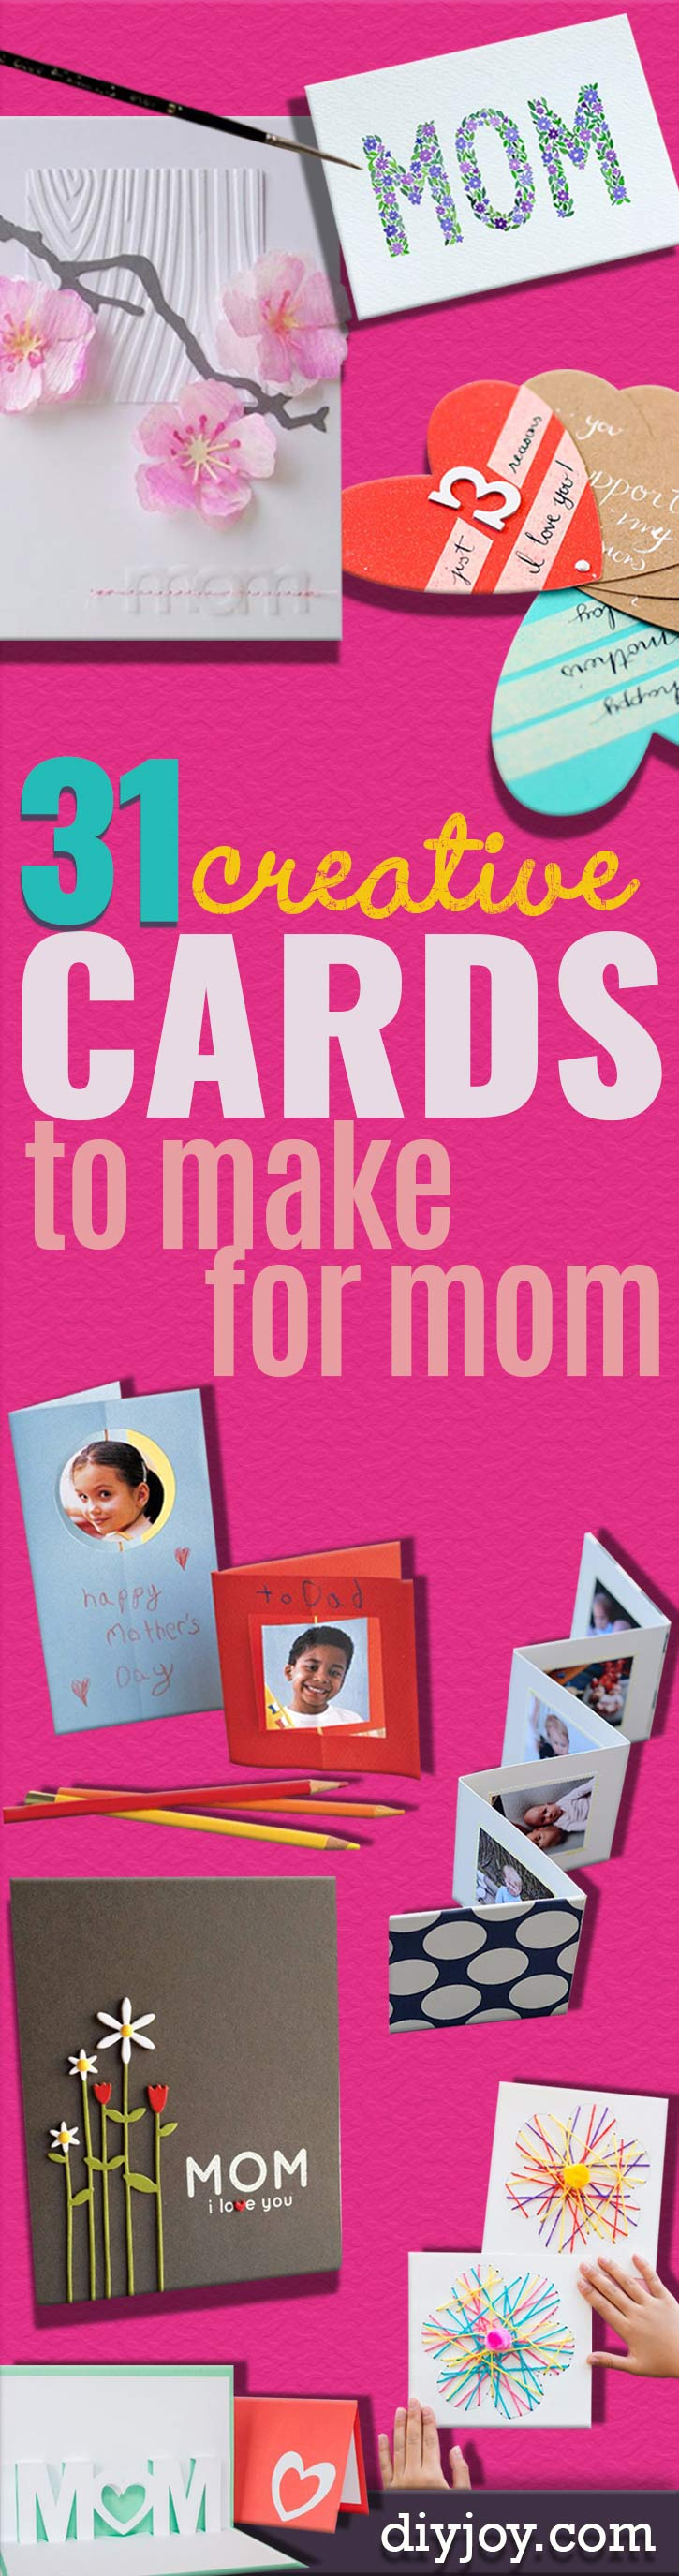 DIY Mothers Day Cards -Creative and Thoughtful Homemade Card Ideas for Mom - Step by Step Tutorials, Best Quotes, Handmade Projects http://diyjoy.com/diy-mothers-day-cards